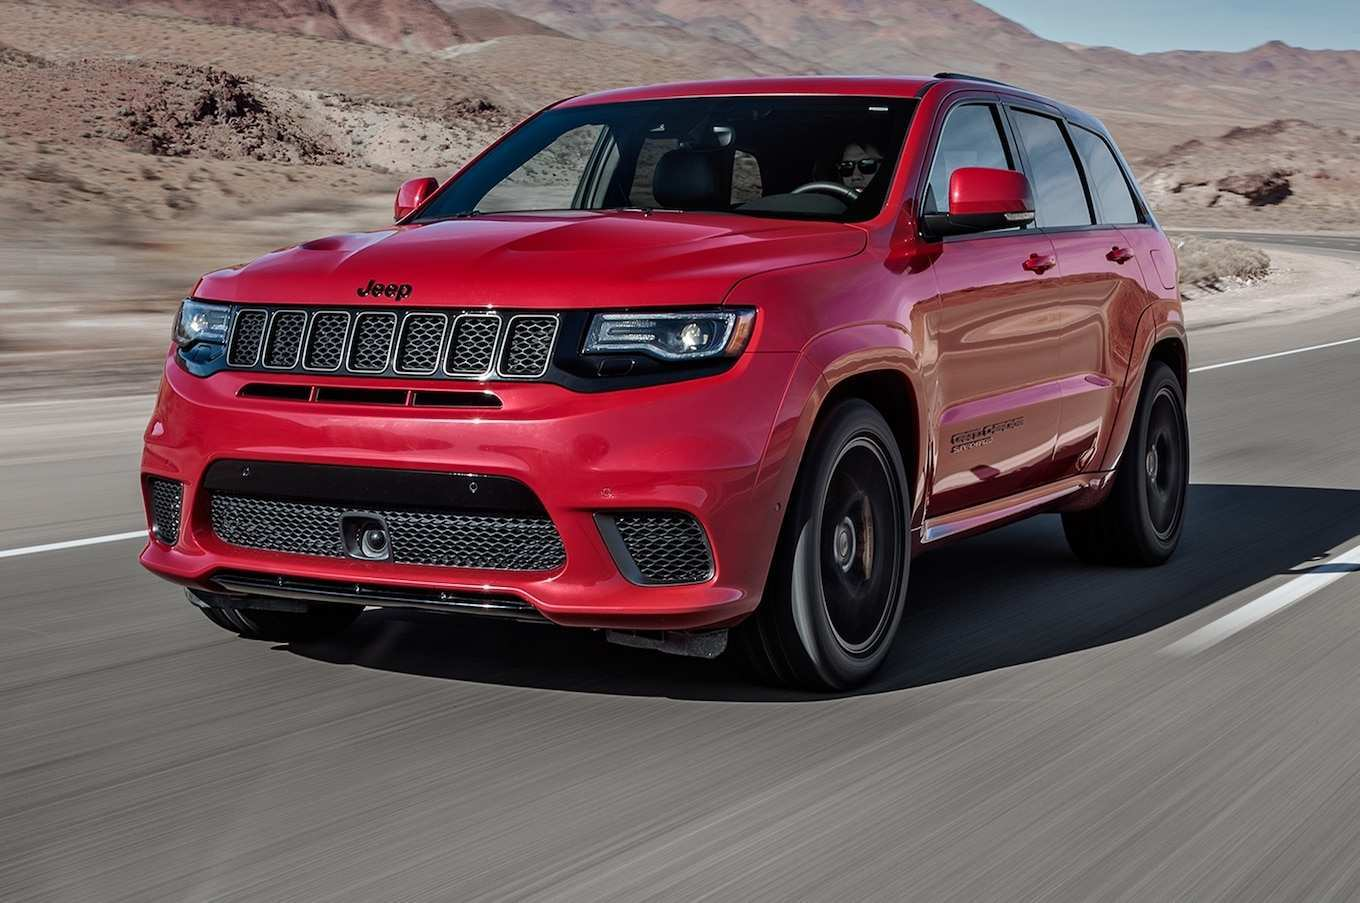 48 All New 2020 Jeep Grand Cherokee New Concept